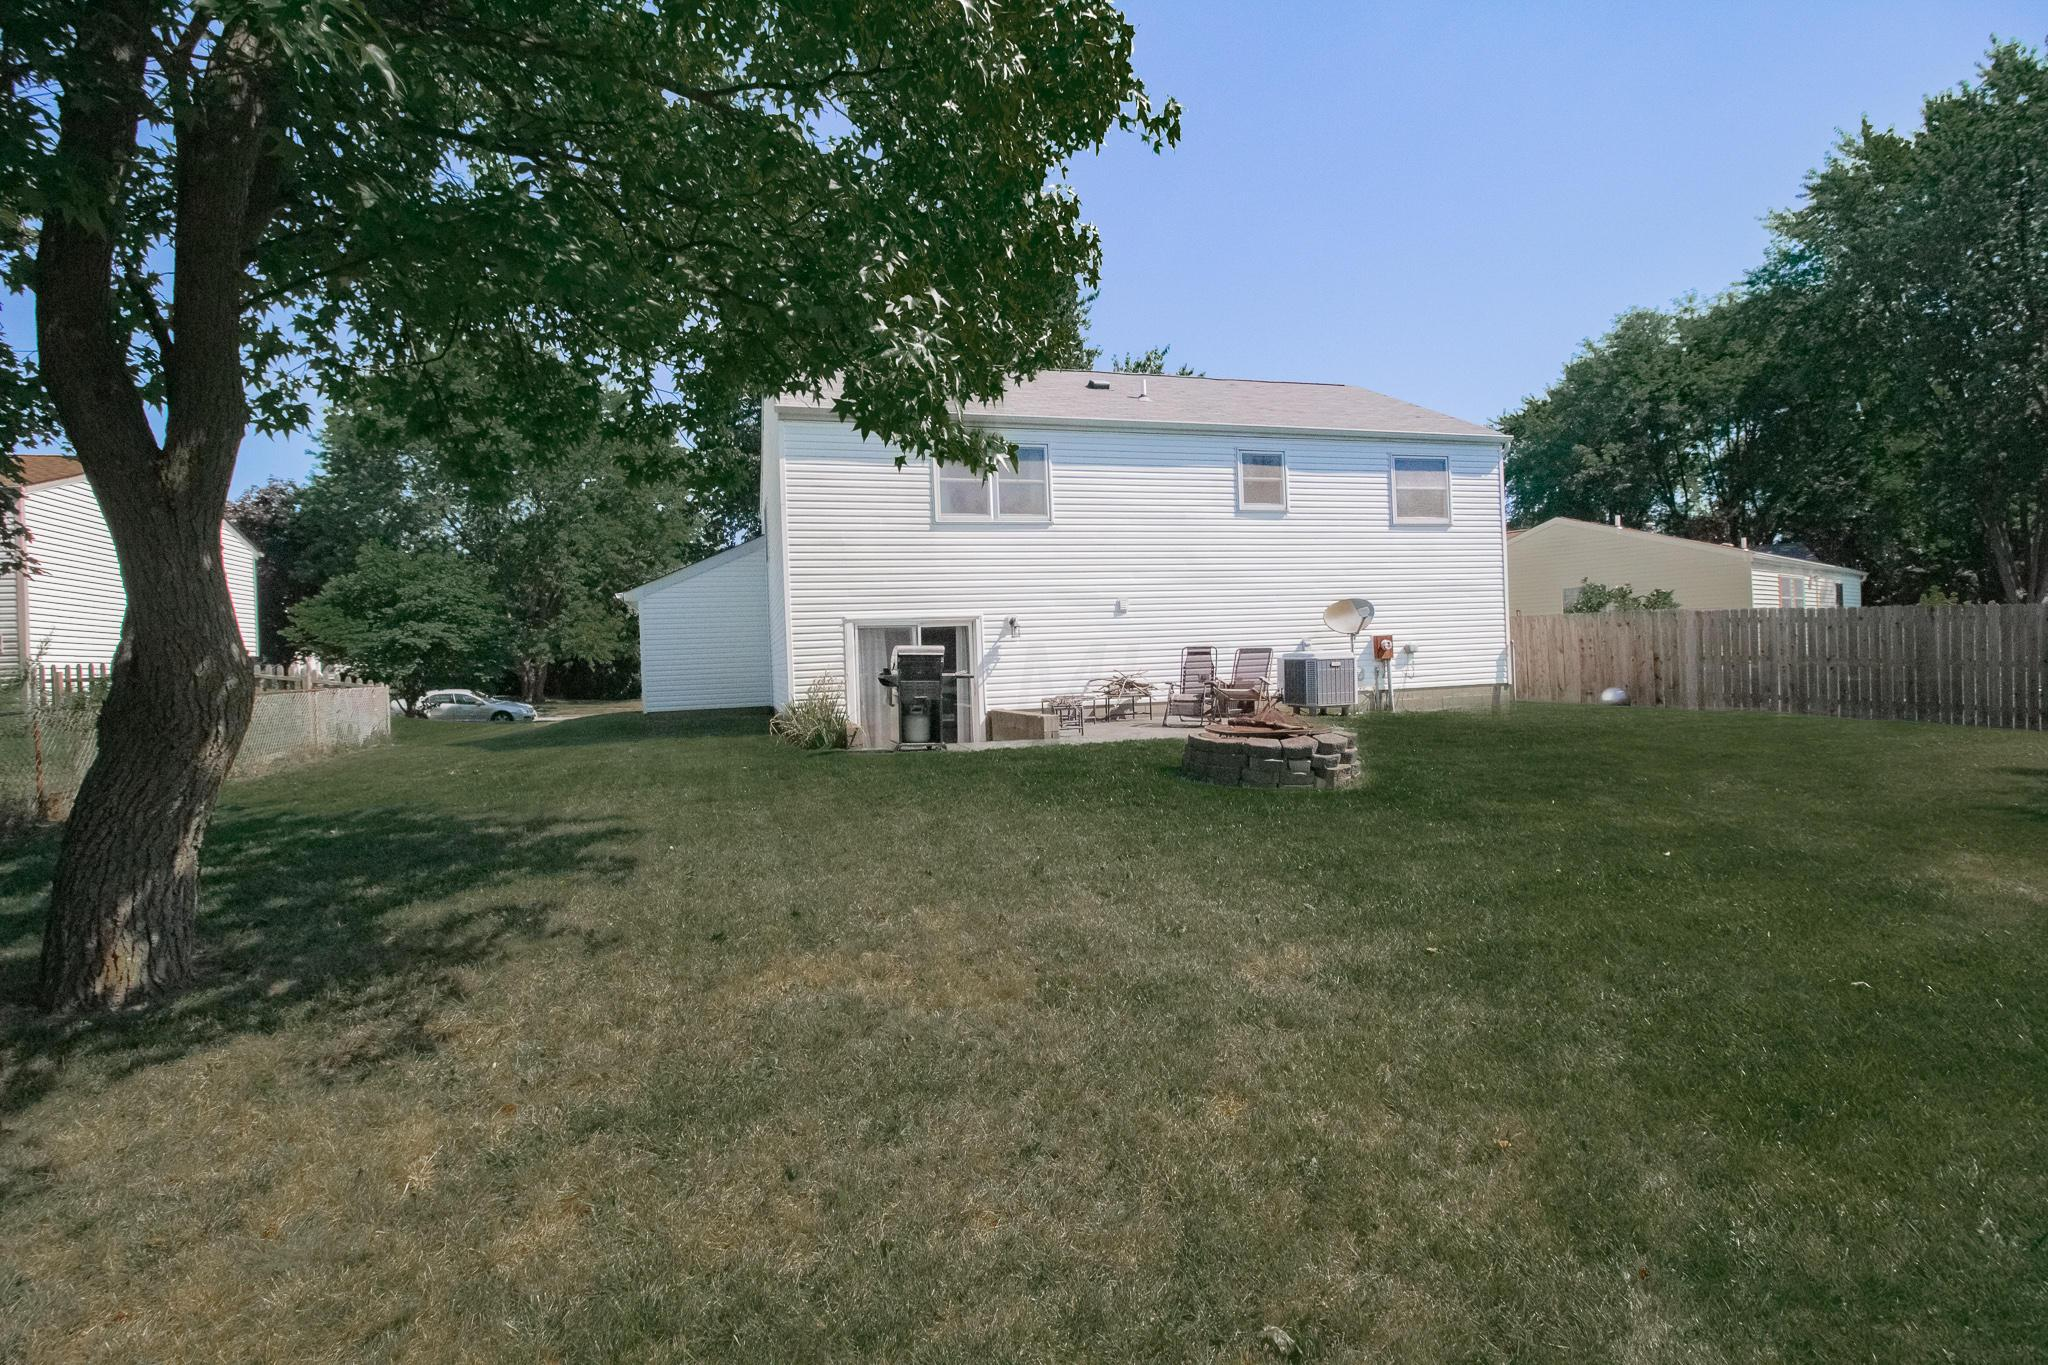 1707 Wessel Drive, Columbus, Ohio 43235, 4 Bedrooms Bedrooms, ,2 BathroomsBathrooms,Residential,For Sale,Wessel,220025746